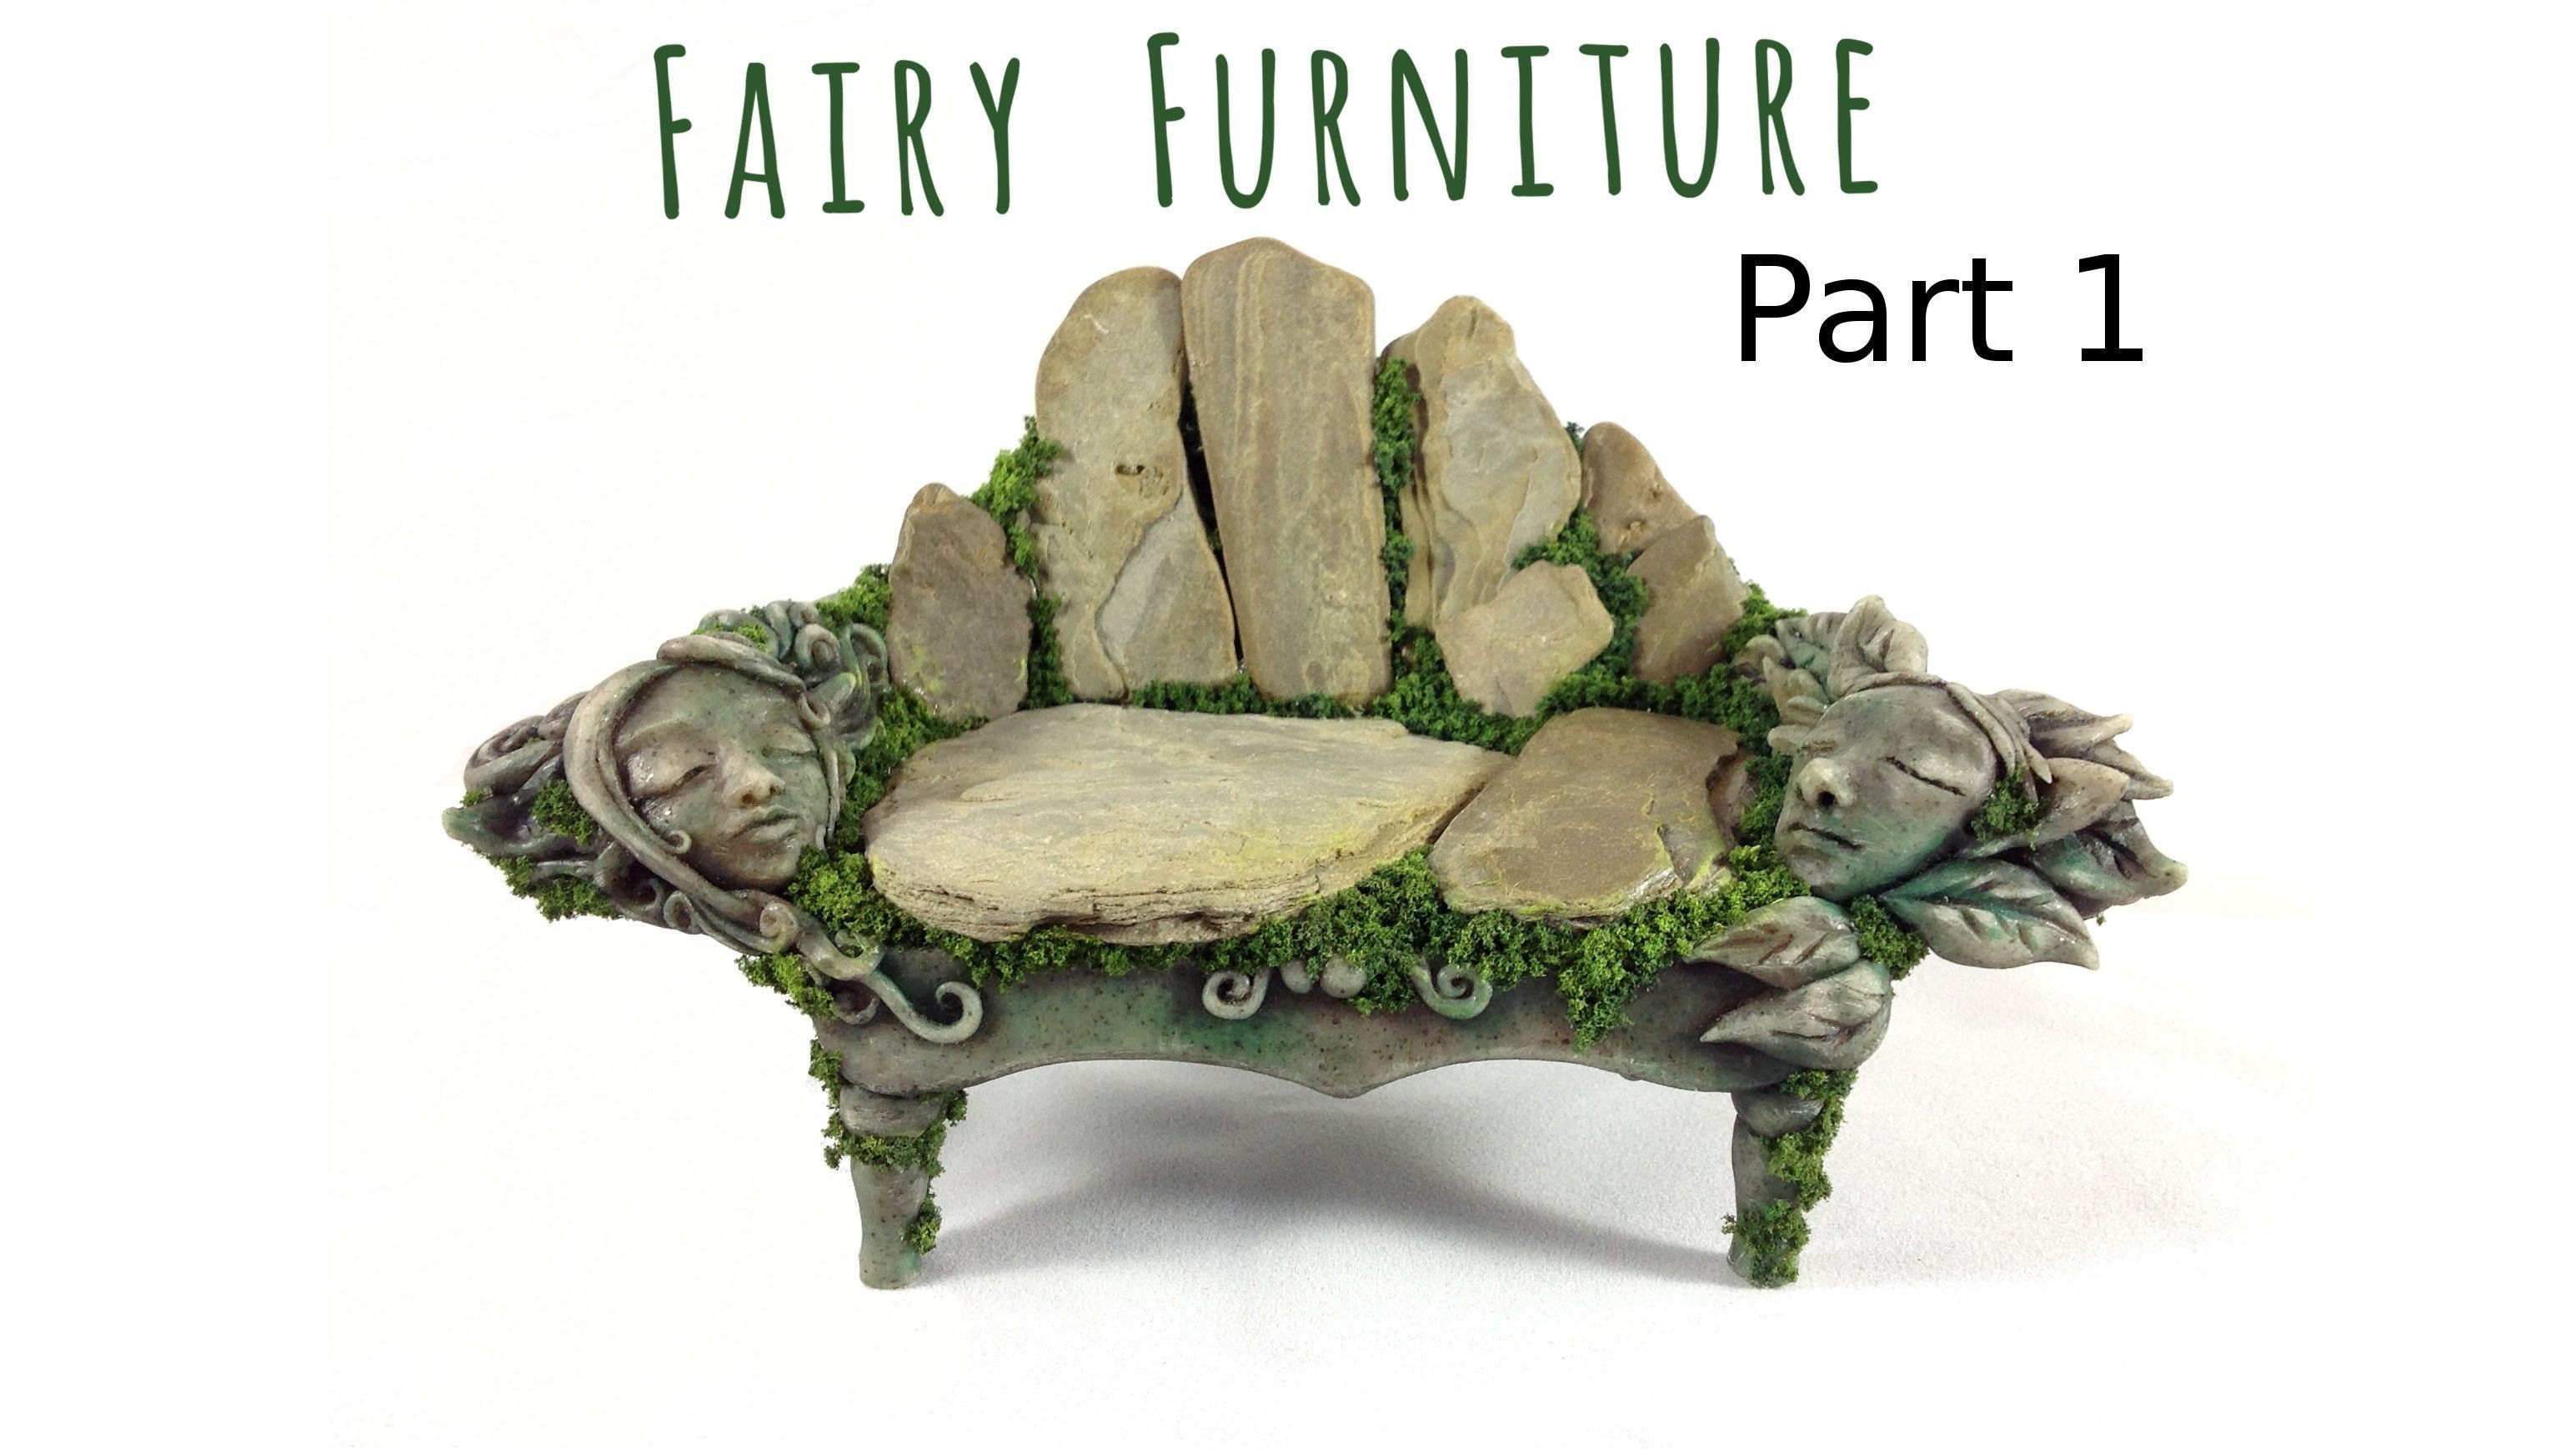 Superieur How To Make Fairy Furniture Out Of Clay U0026 Rocks: Part 1, DIY Fairy Garden  Bench